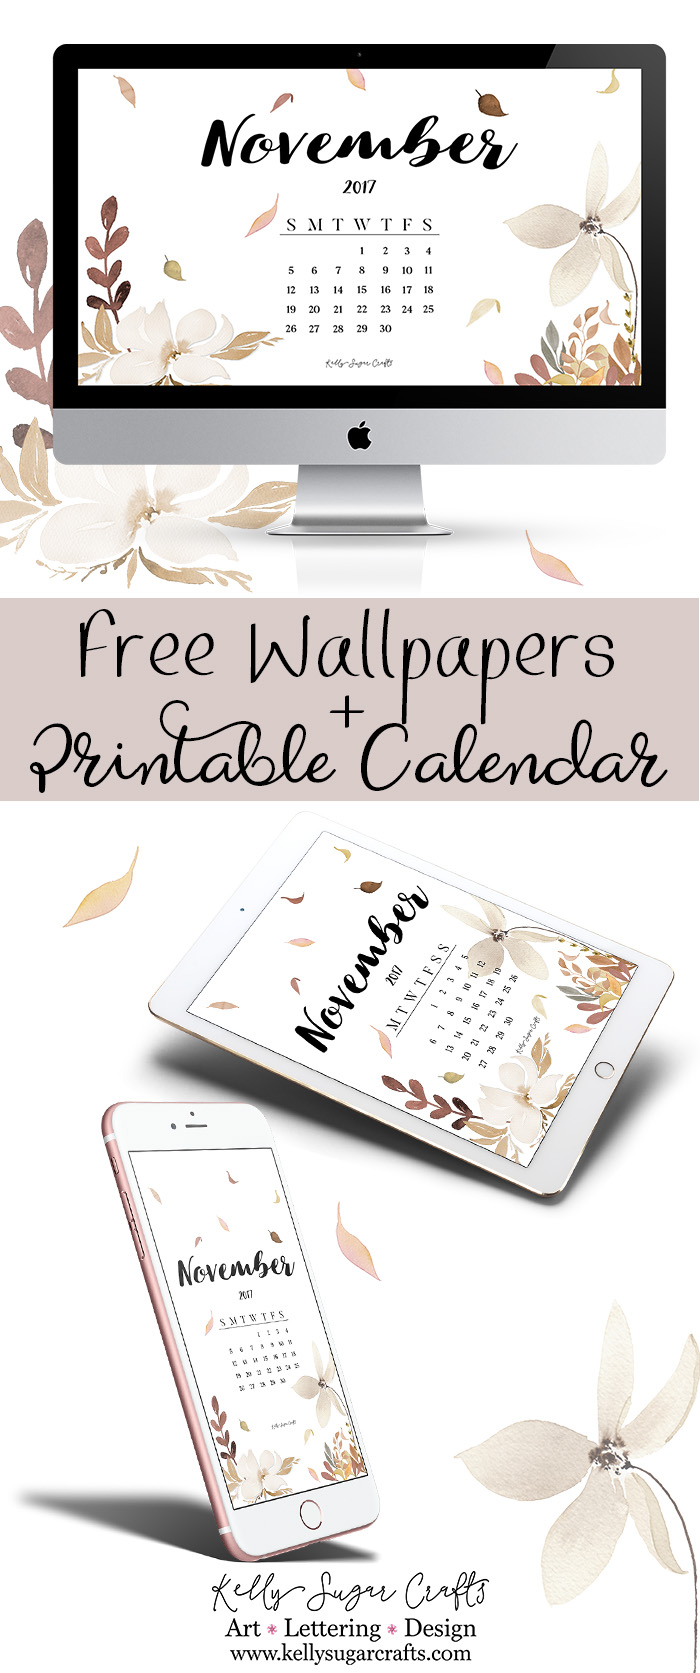 November Calendar Wallpaper For Iphone : November printable calendar wallpapers kelly